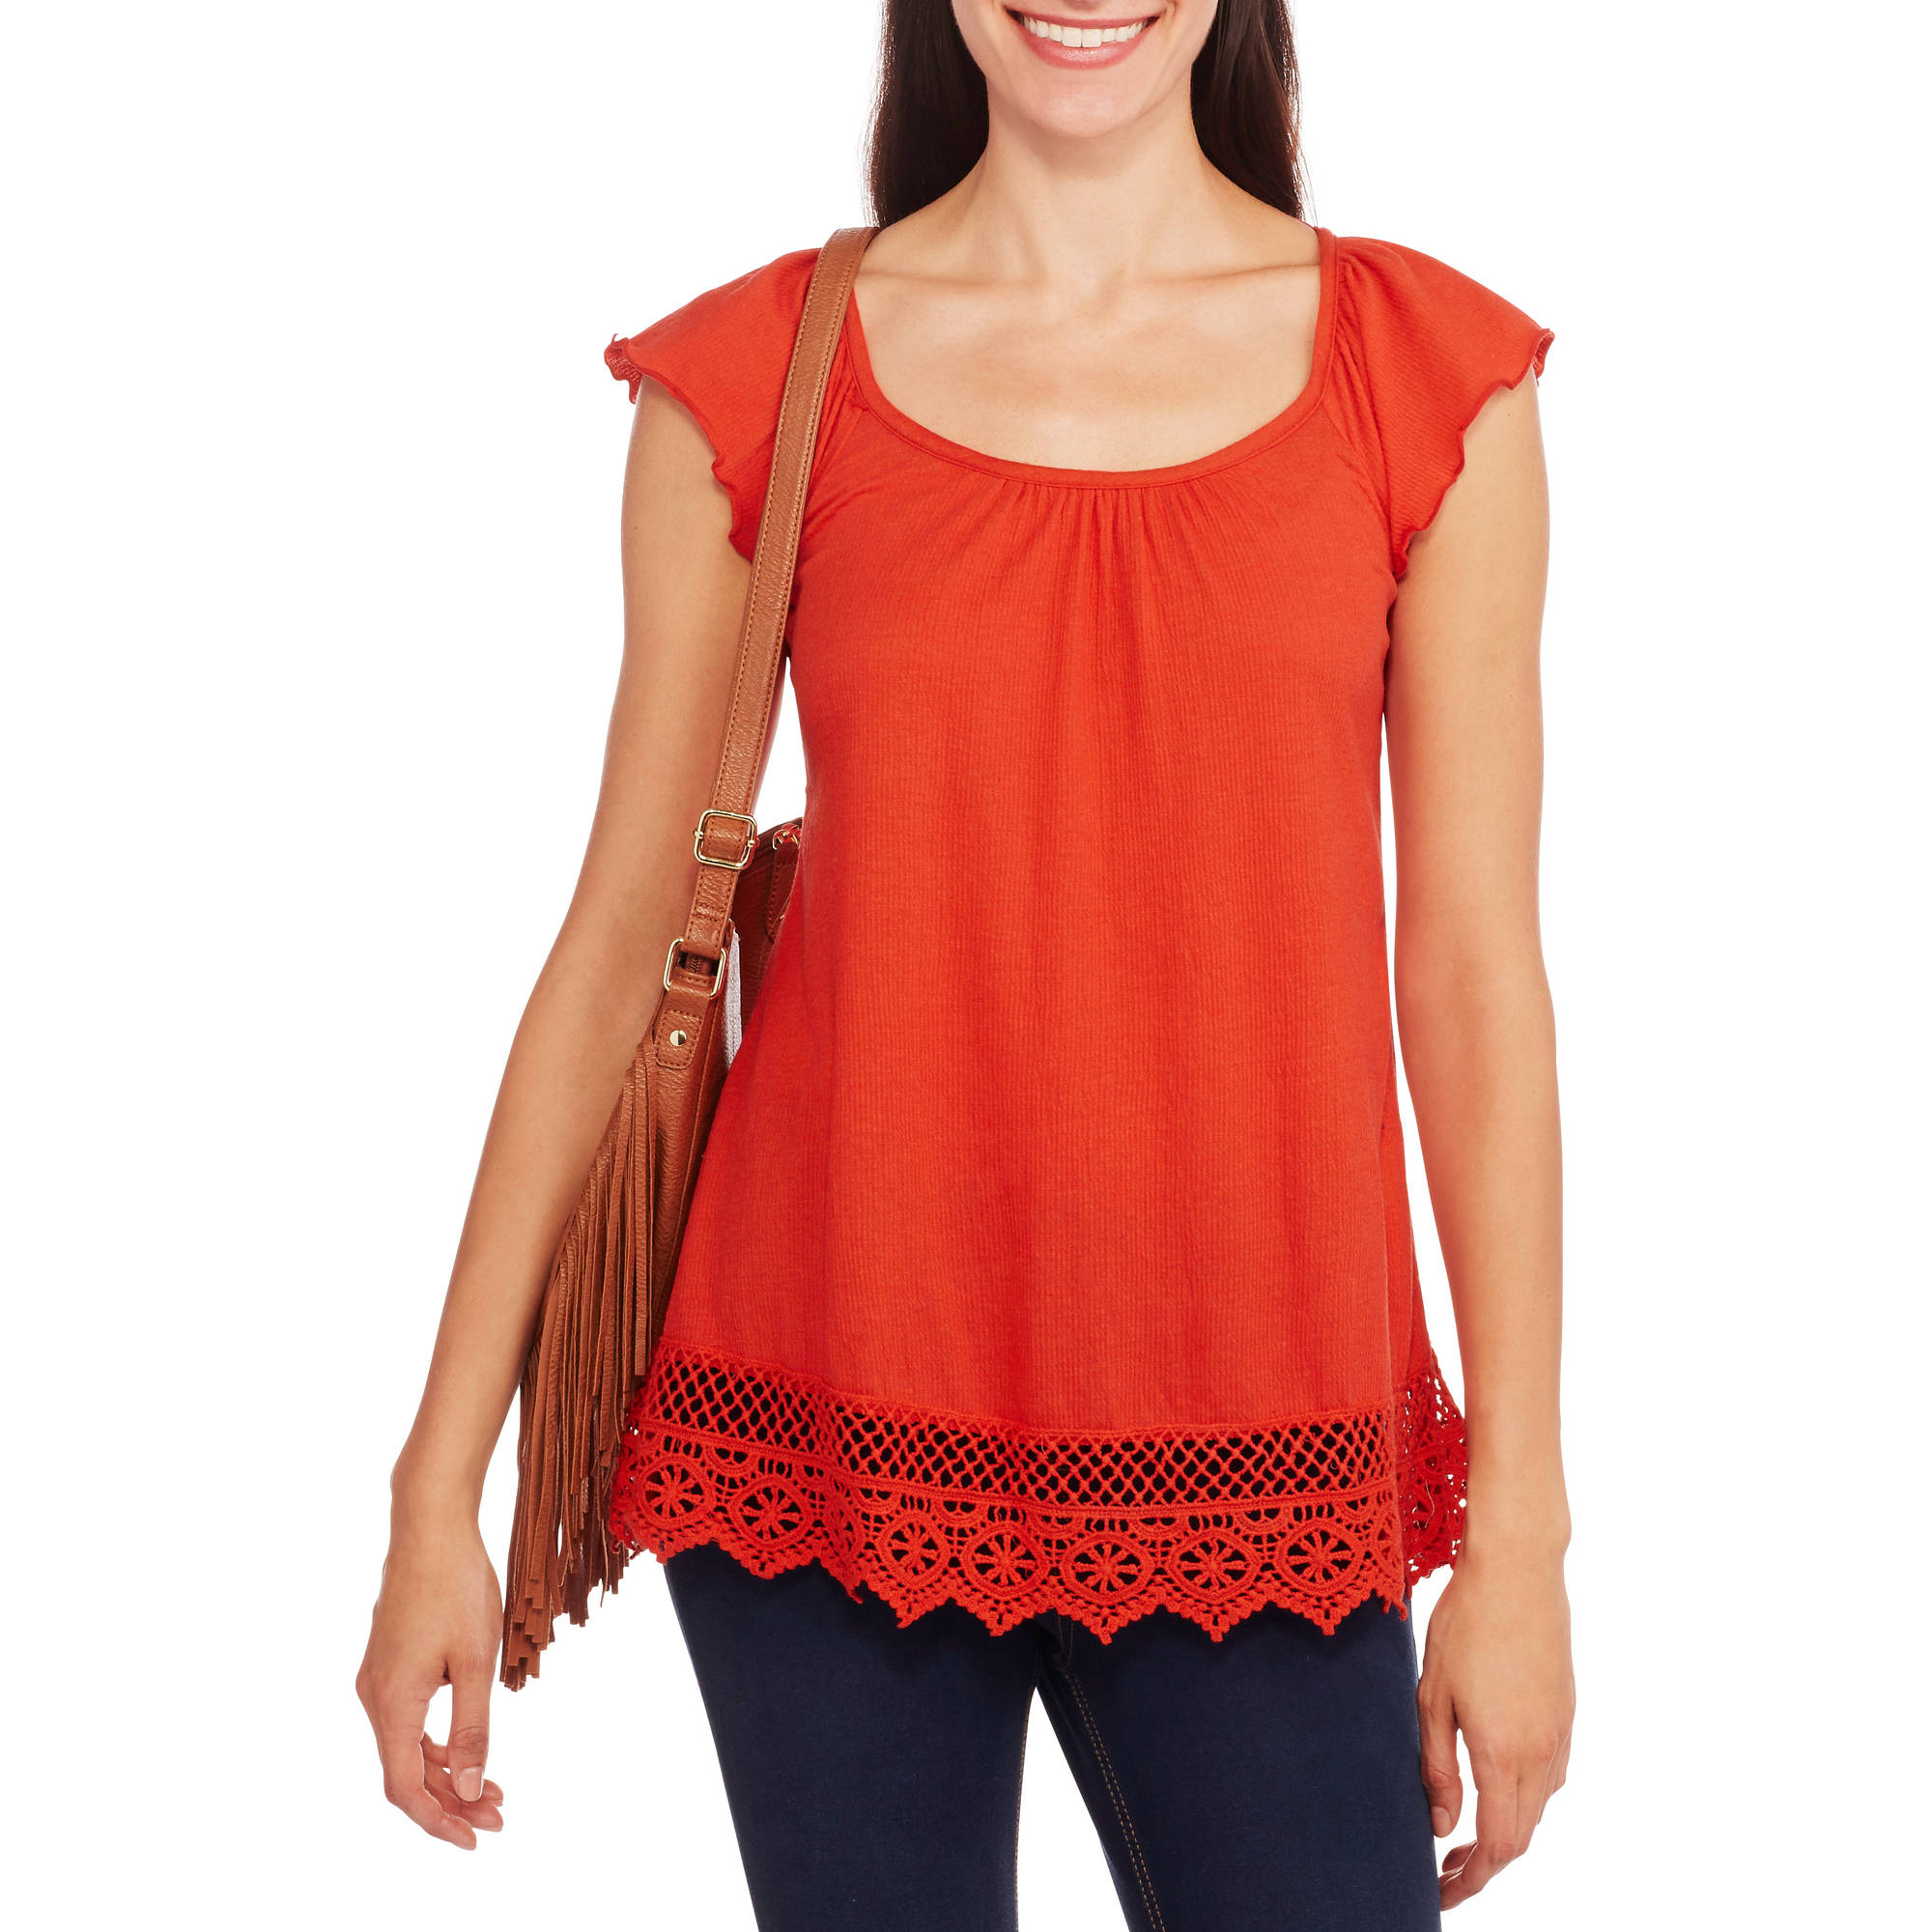 French Laundry Women's Crinkle Flutter-Sleeve Top With Crochet Trim